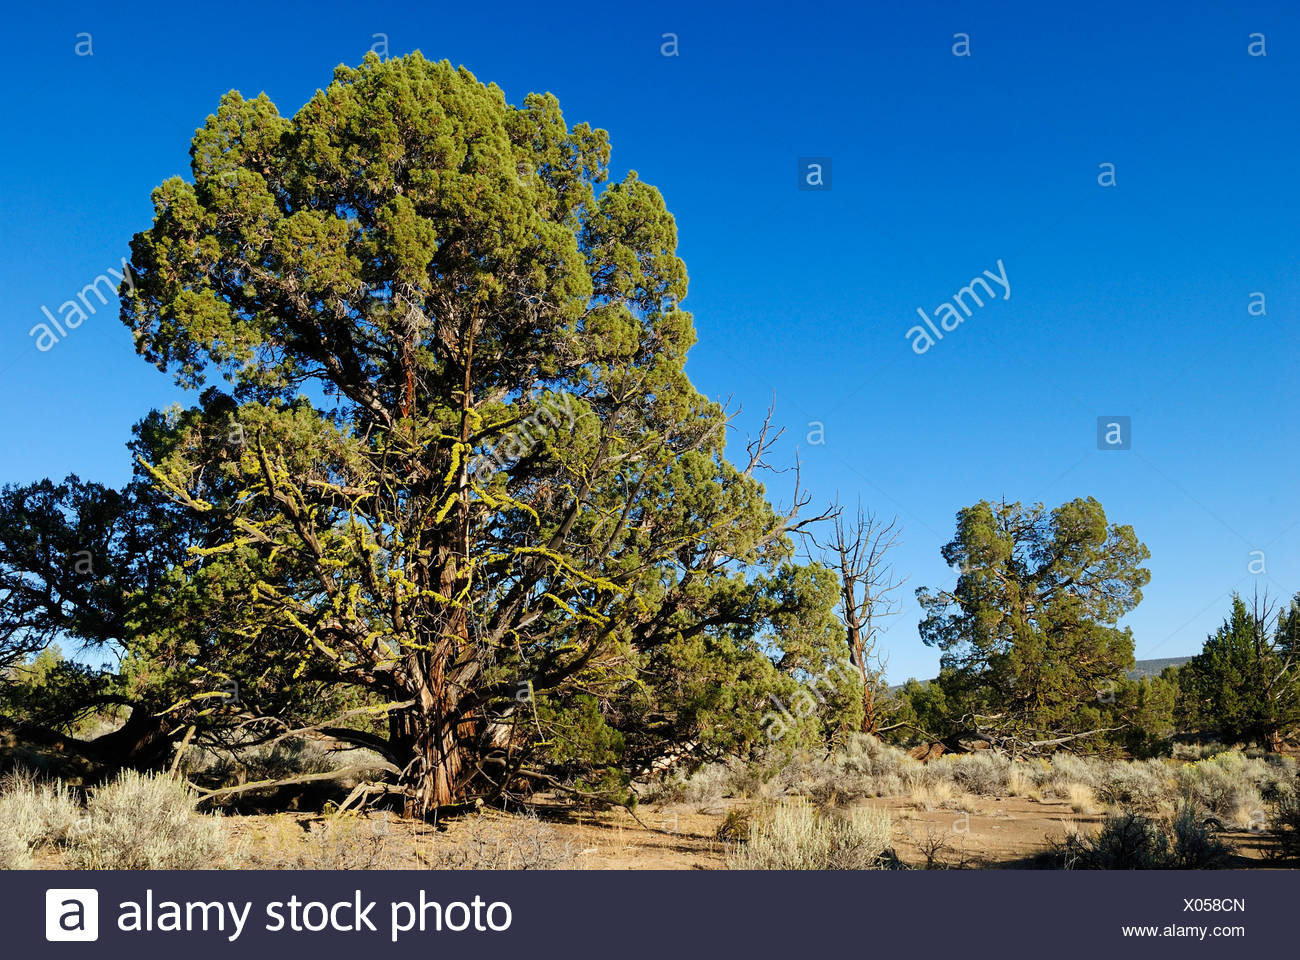 1000 Jahre alter Wacholder Baum, Western Juniper in den Lavafeldern des Ancient Juniper Trail, Badlands Wilderness Area, Oregon - Stock Image